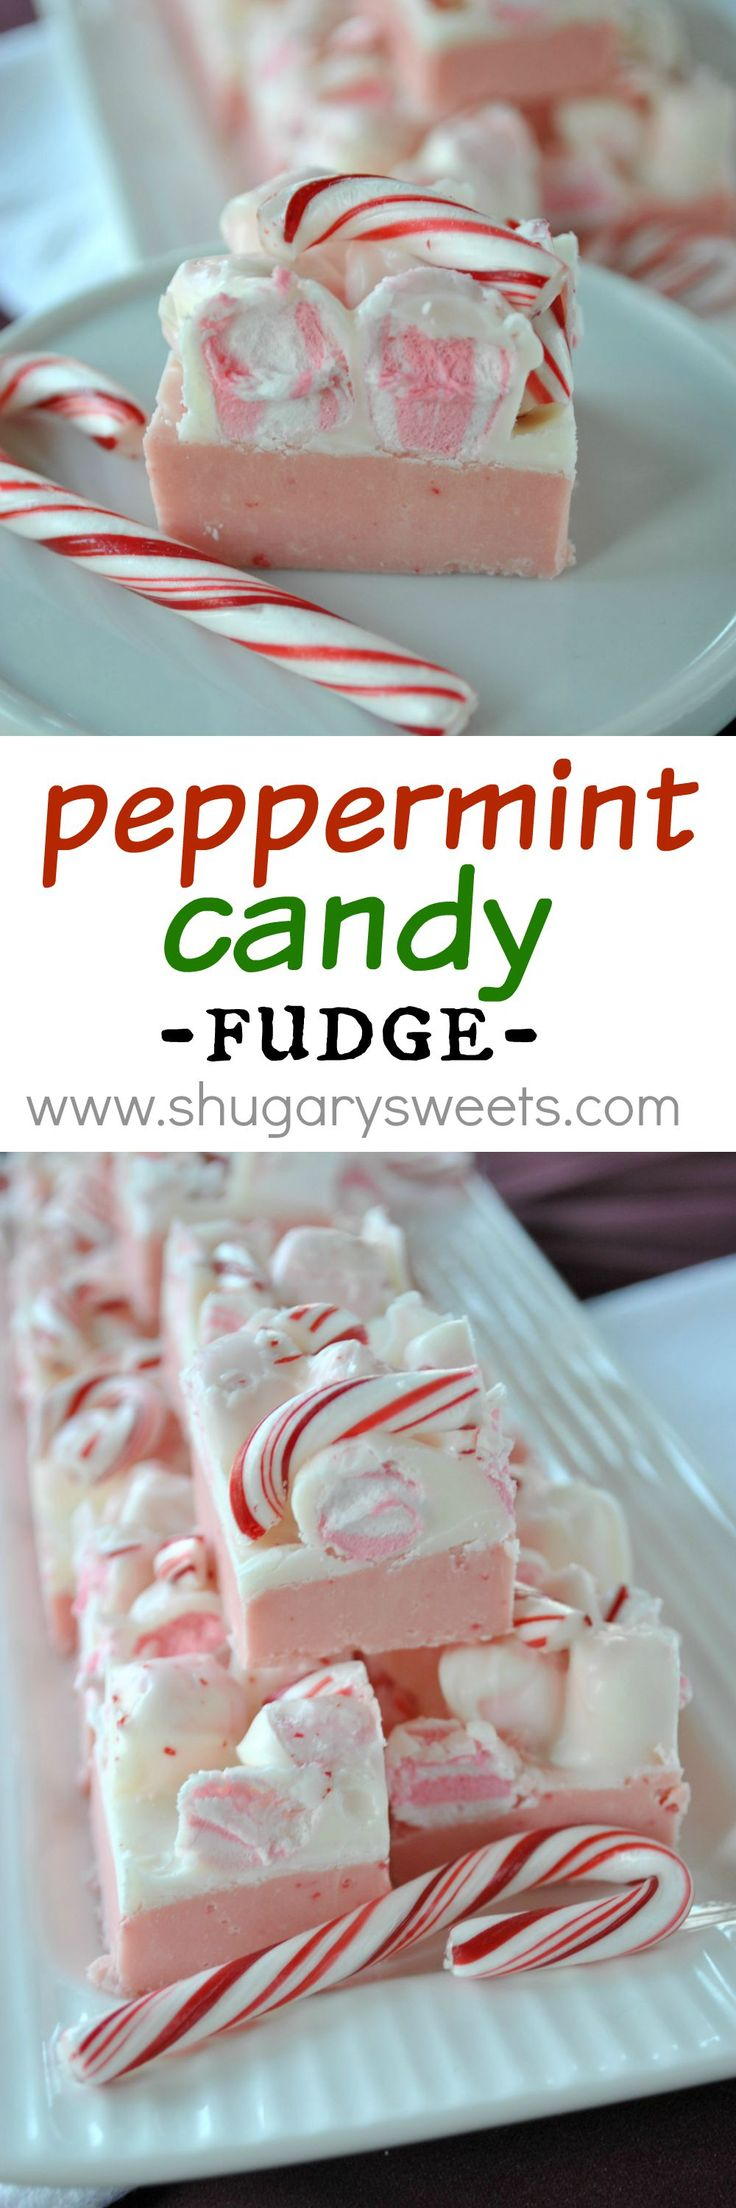 Peppermint Fudge : sweet layers of fudge with peppermint marshmallow and candy cane!